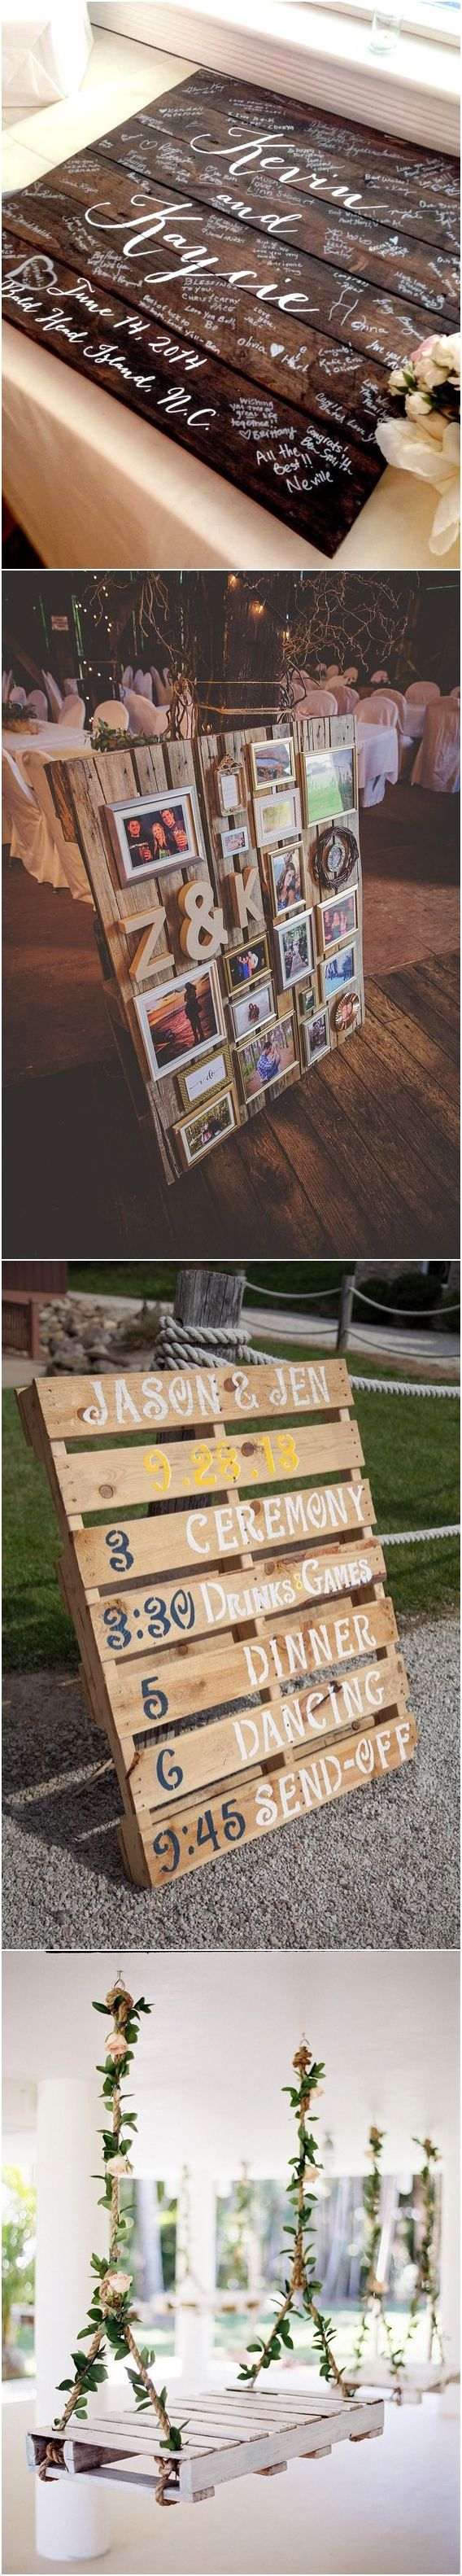 Pallet wedding decor ideas  Say ucI Doud to These Fab  Rustic Wood Pallet Wedding Ideas